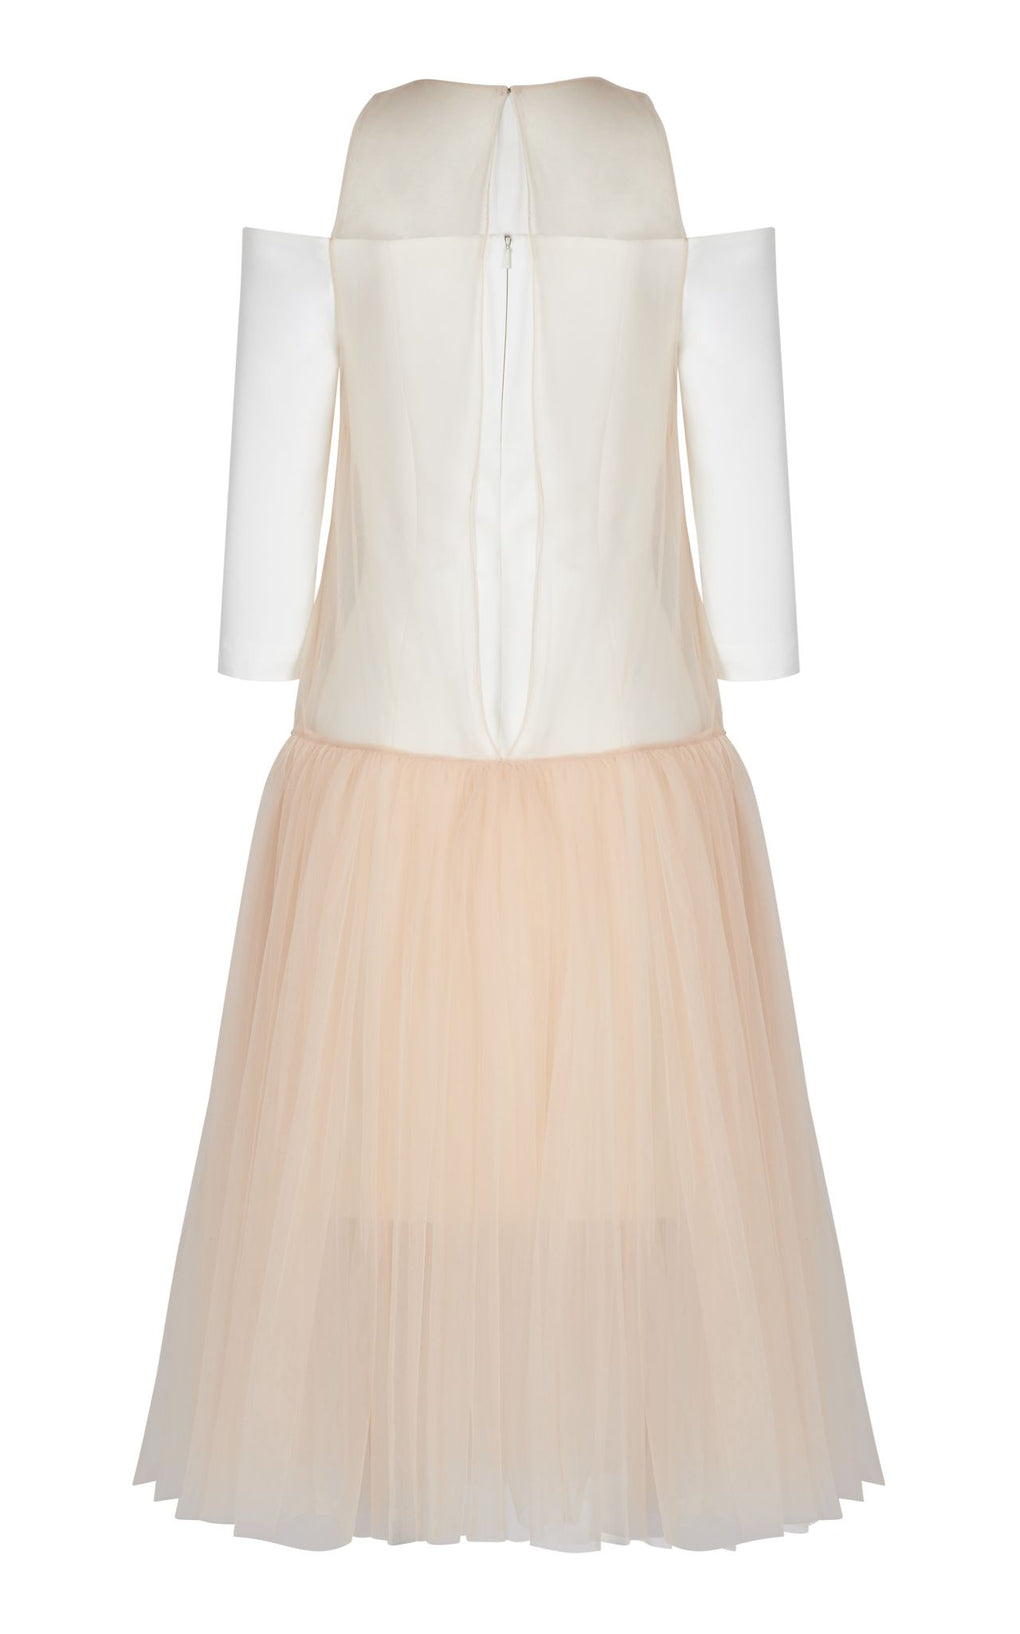 Nude tulle off white dress